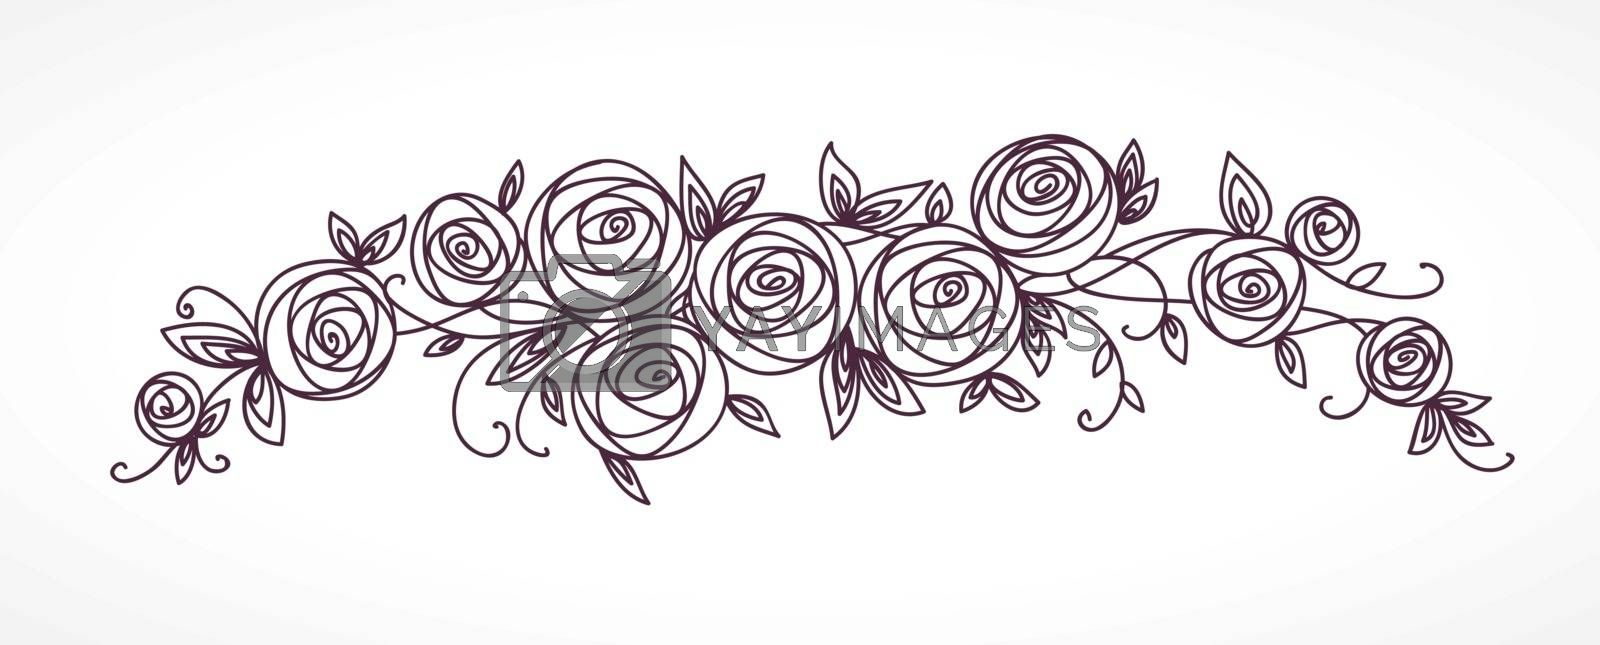 Stylized rose flowers bouquet. Branch of flowers and leaves interlacing